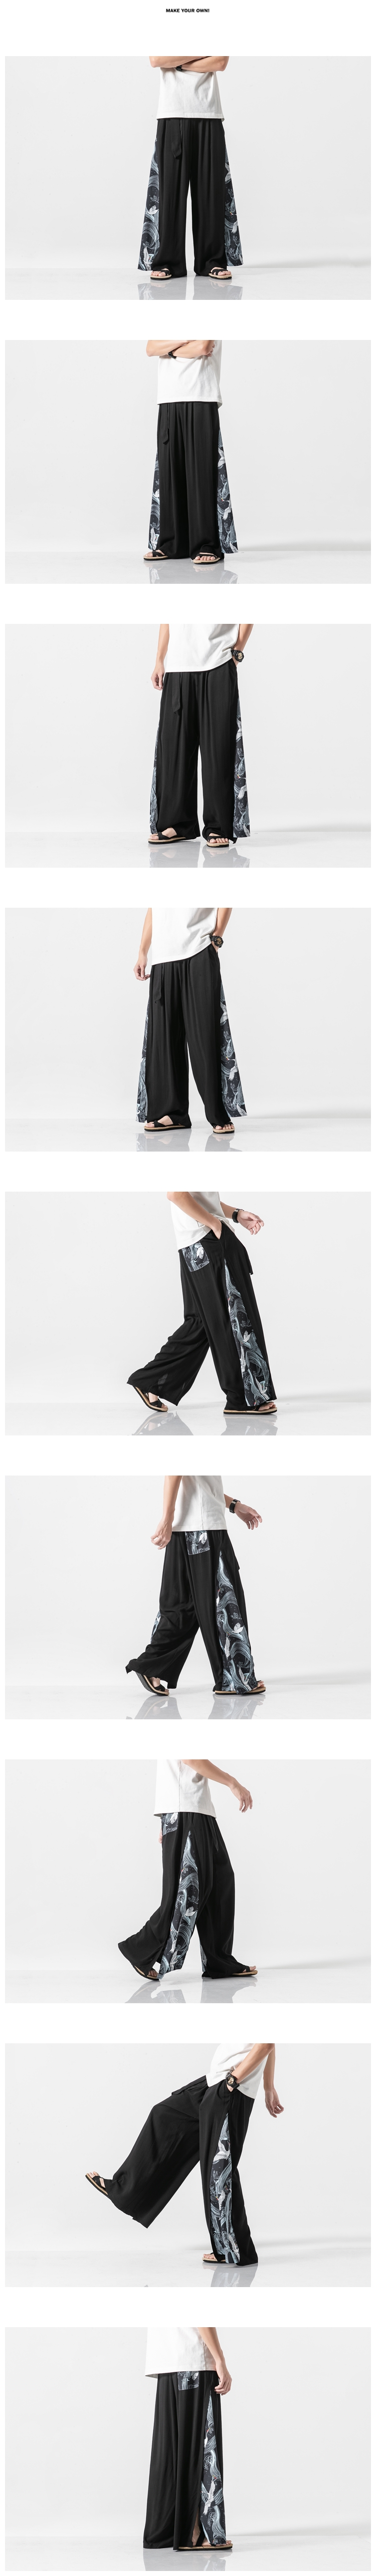 Sinicism Store 2020 Summer Chinese Style Cotton Pants Mens Patchwork Vintage Loose Pants Male Wide Leg Pants 27